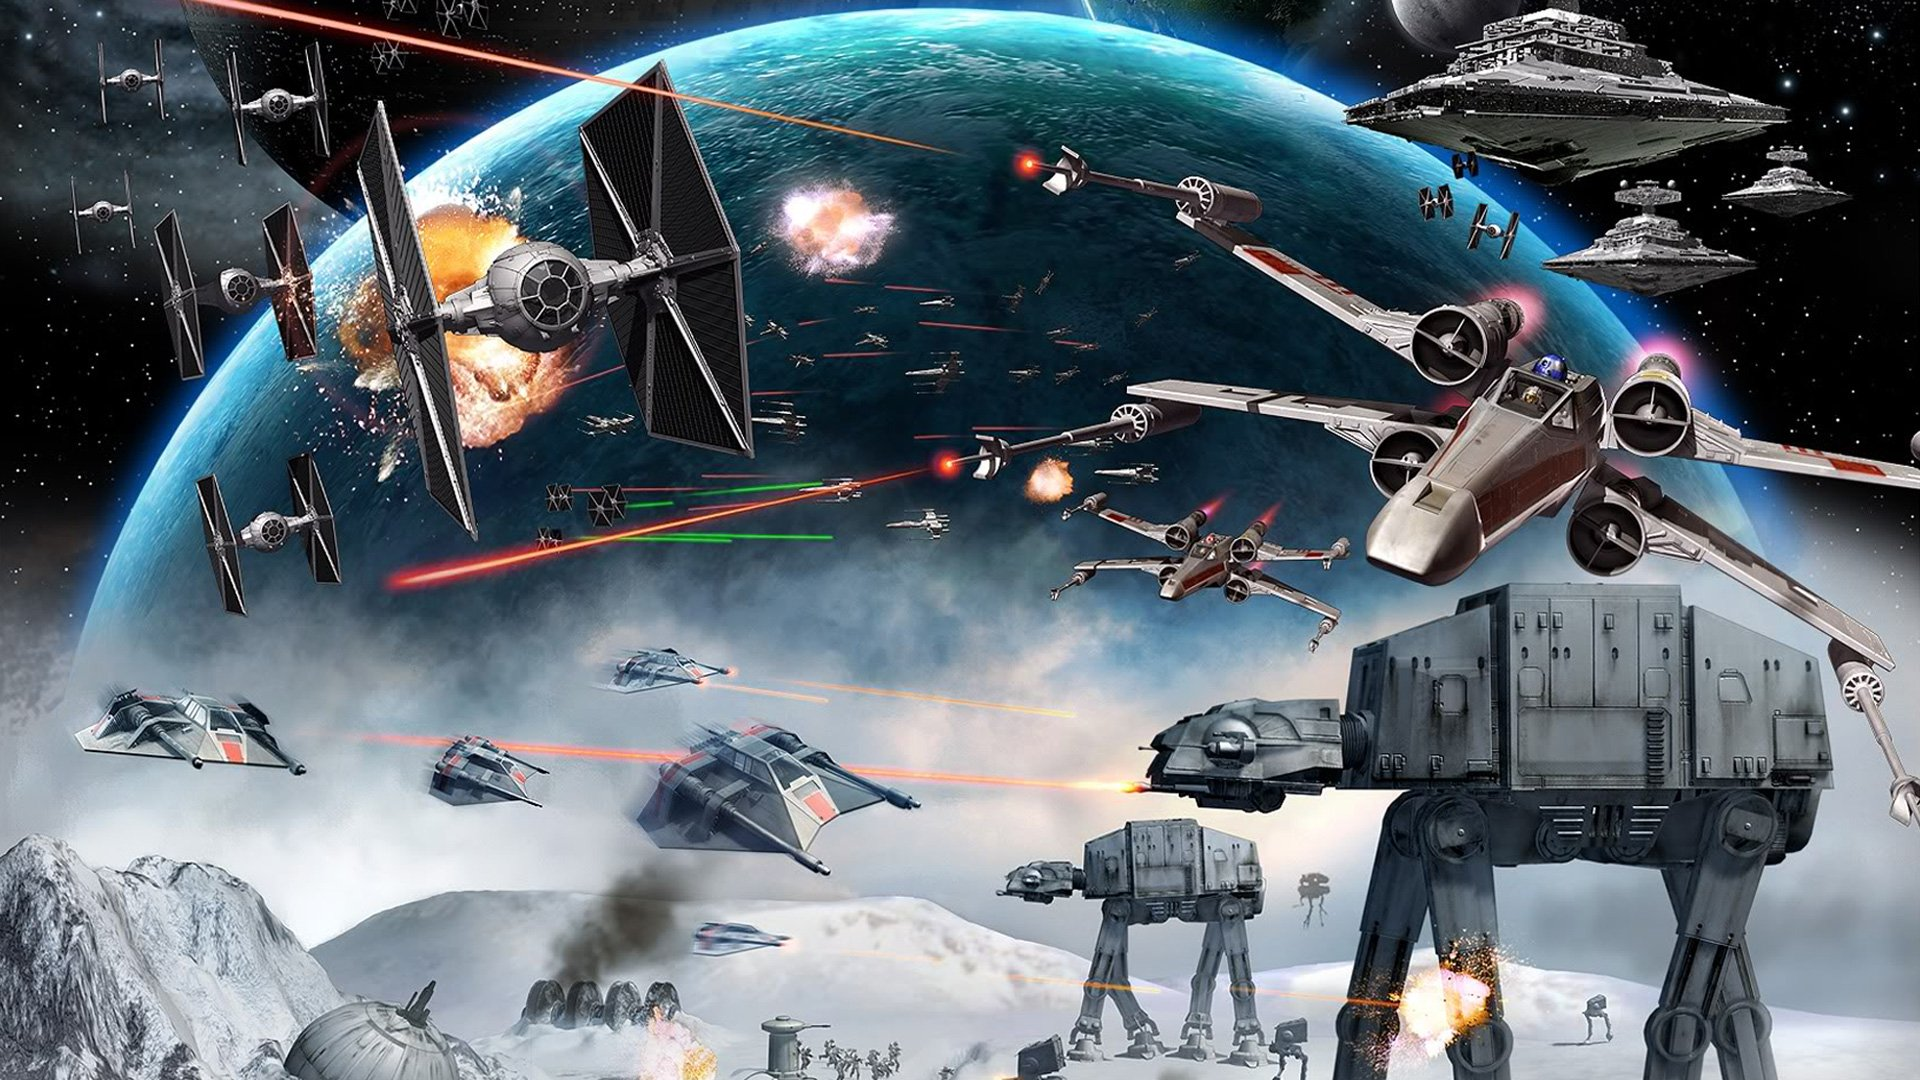 Android Star Wars Wallpapers Group 1920x1080